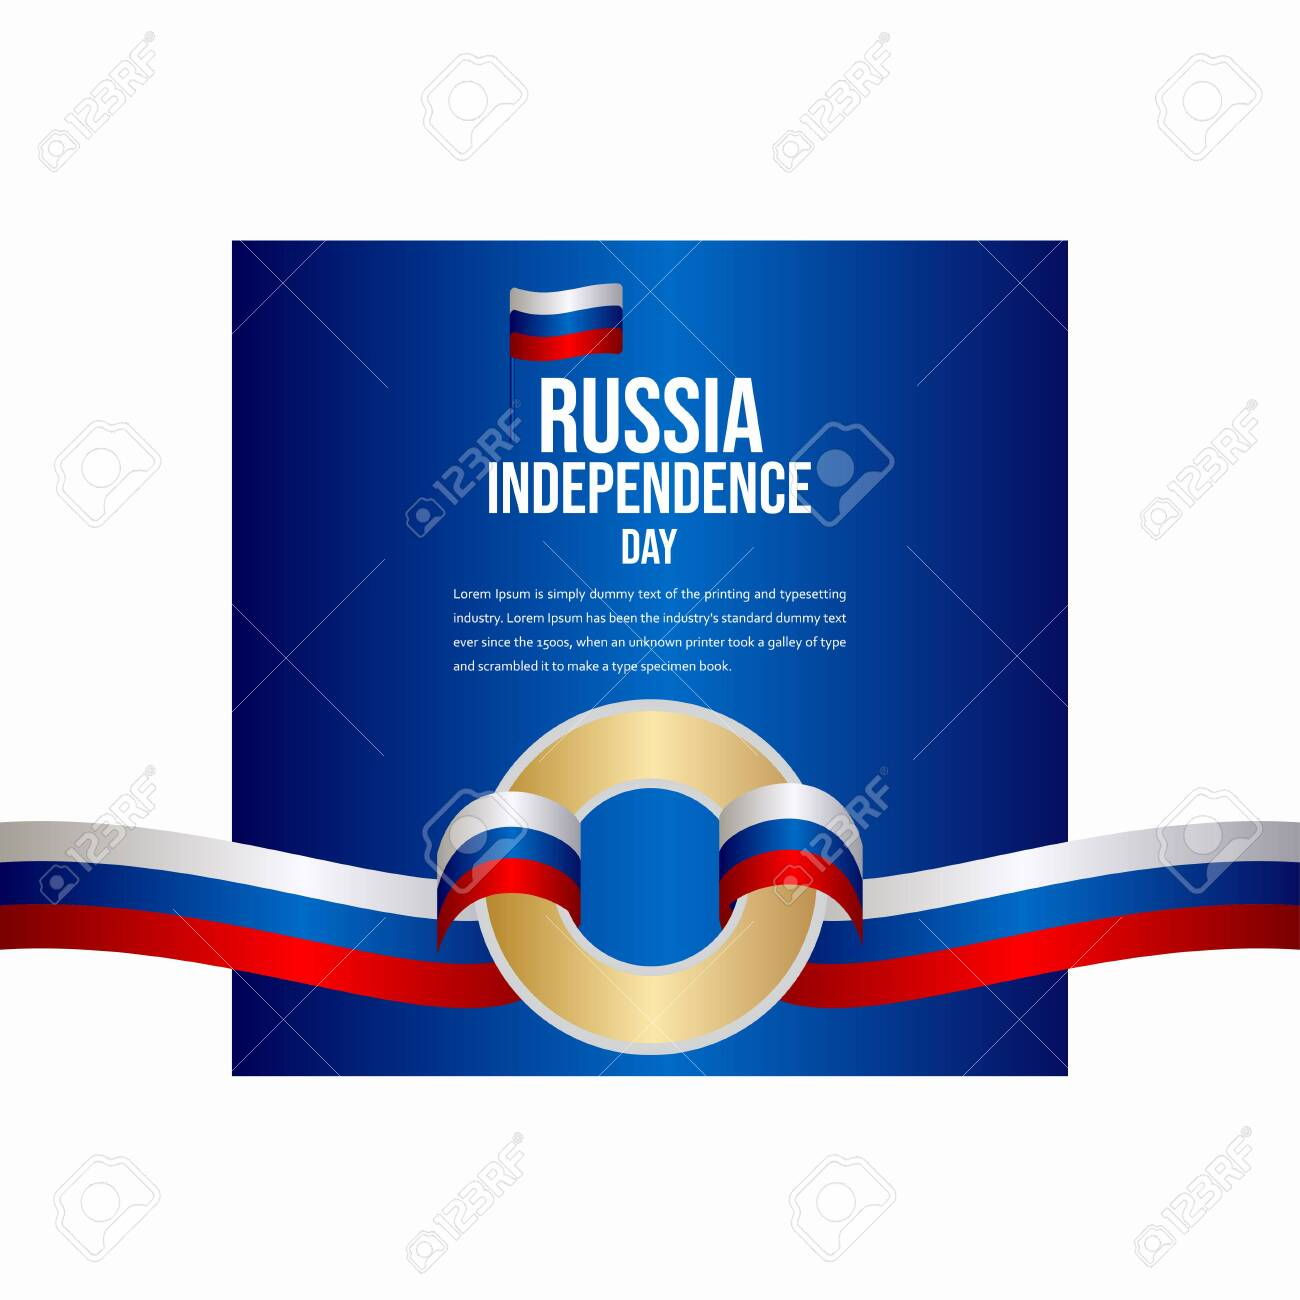 Russia Independence Day Celebration Vector Template Design Illustration - 136866526